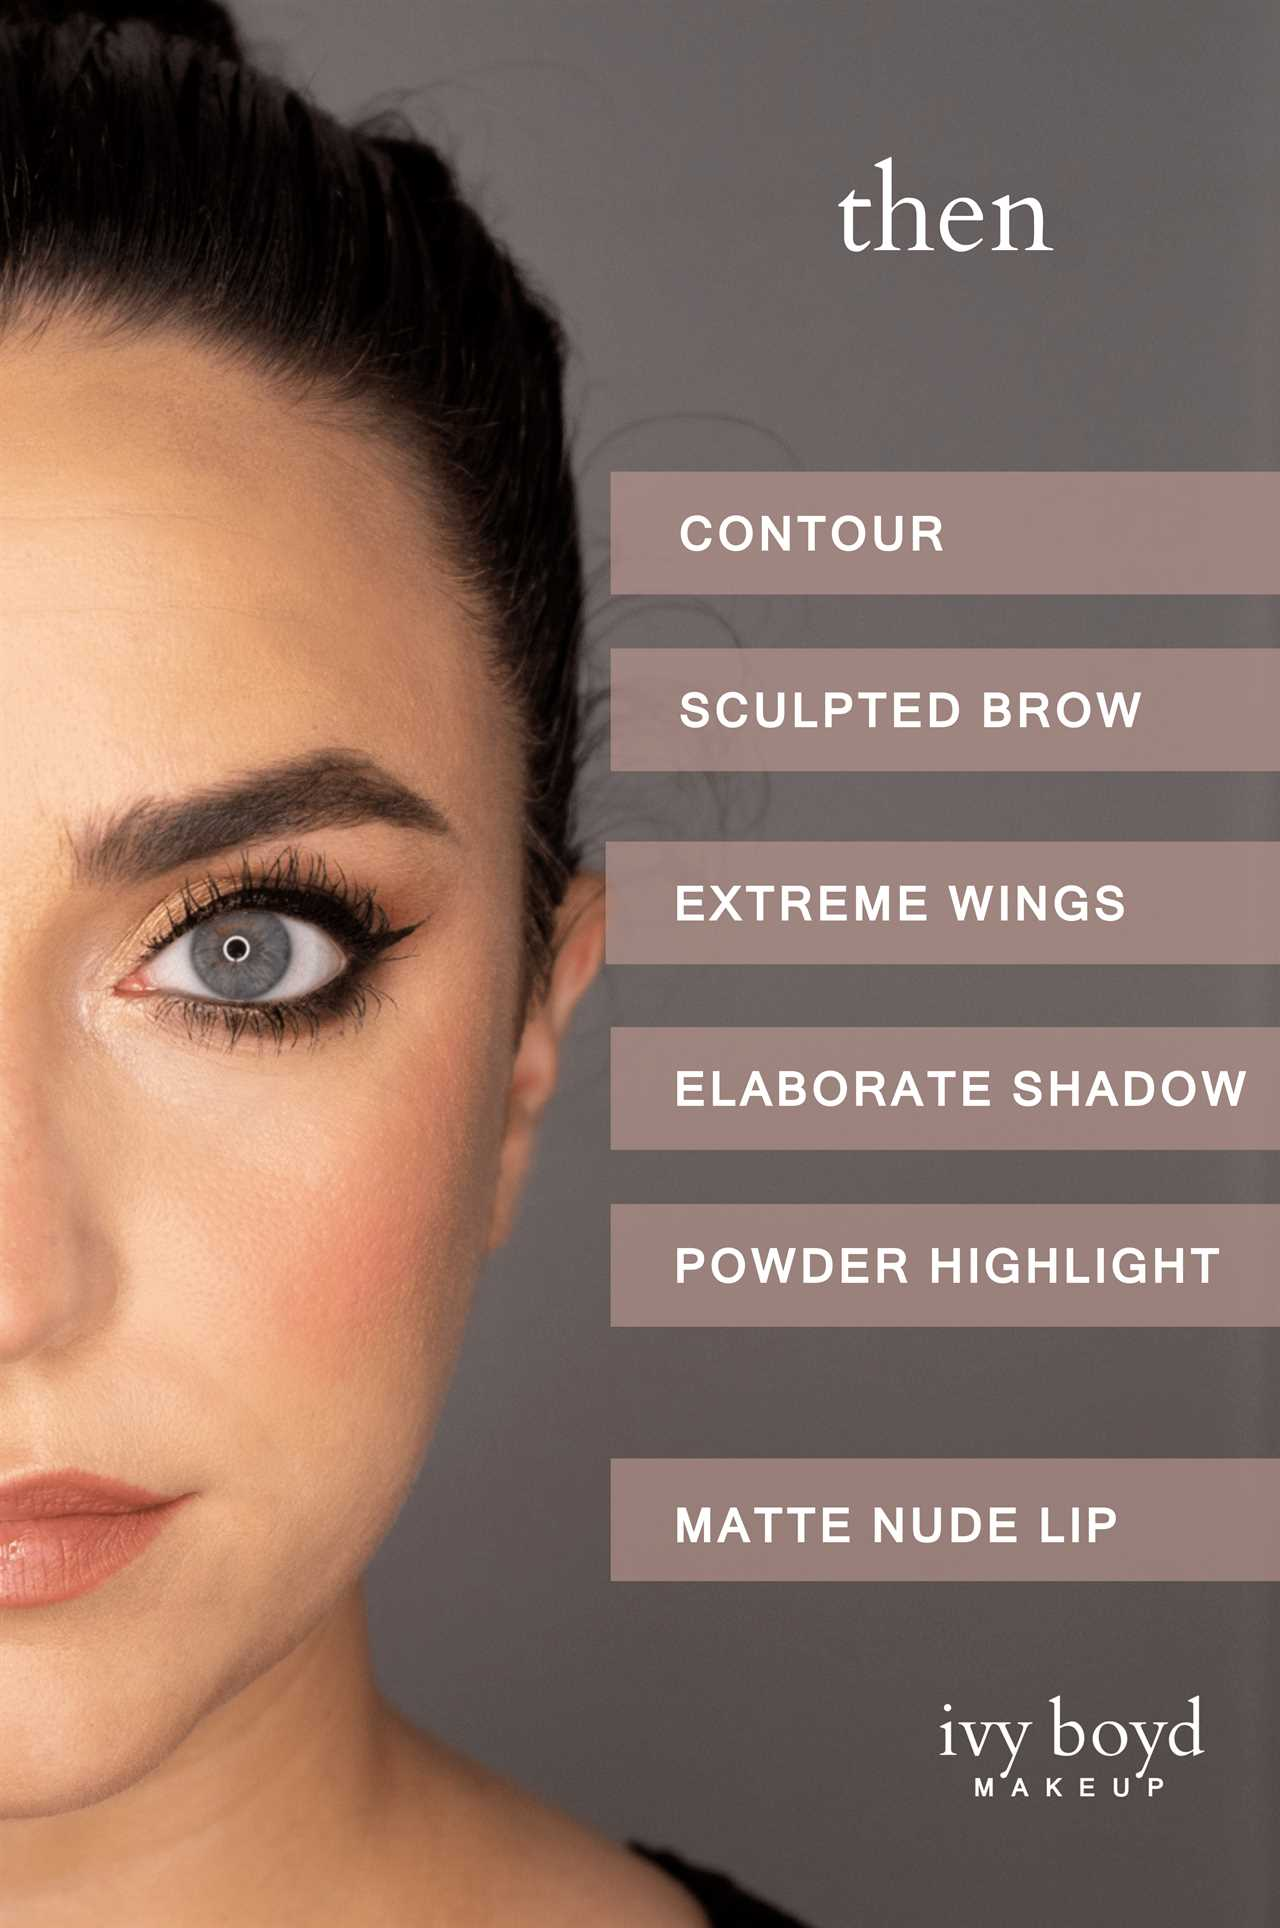 example of old makeup trends